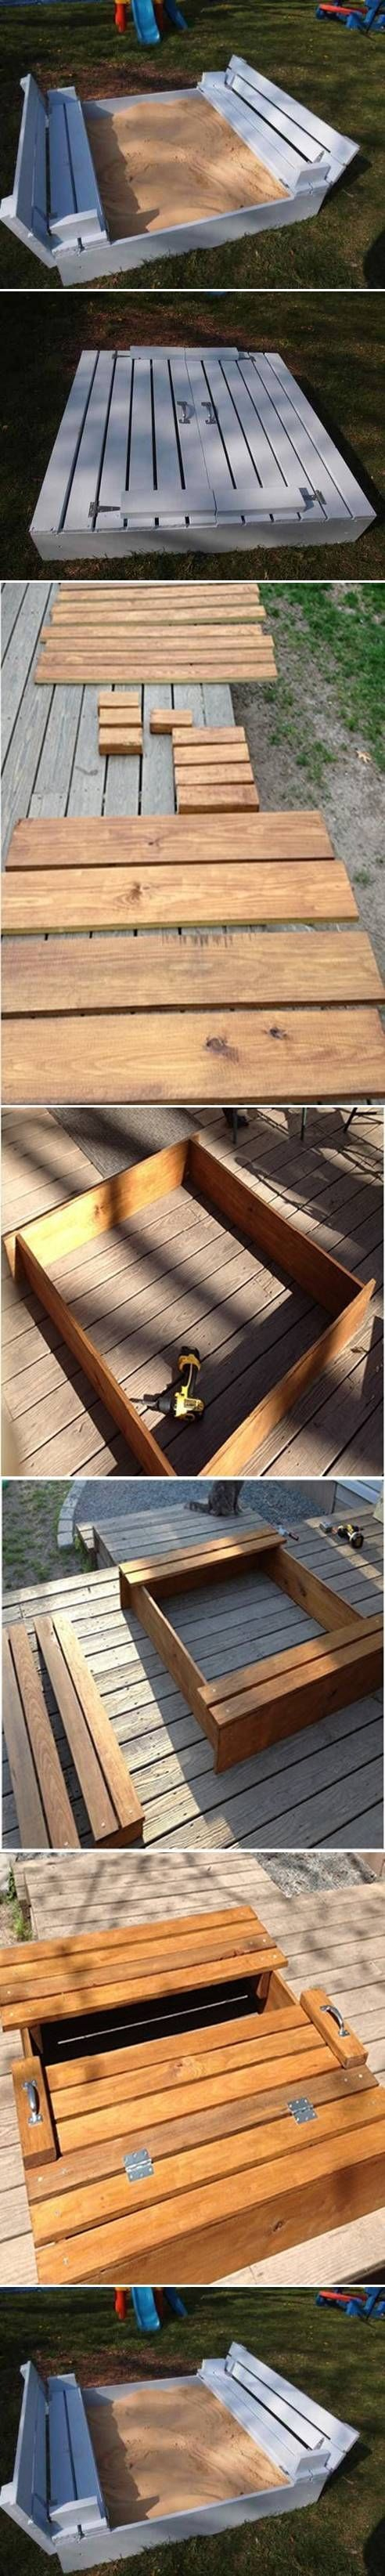 DIY Sandbox outdoors diy easy crafts diy ideas diy crafts do it yourself easy diy diy tips diy images do it yourself images diy photos diy pics easy diy craft ideas diy tutorial diy tutorials diy tutorial idea diy tutorial ideas sandbox sandbox craft